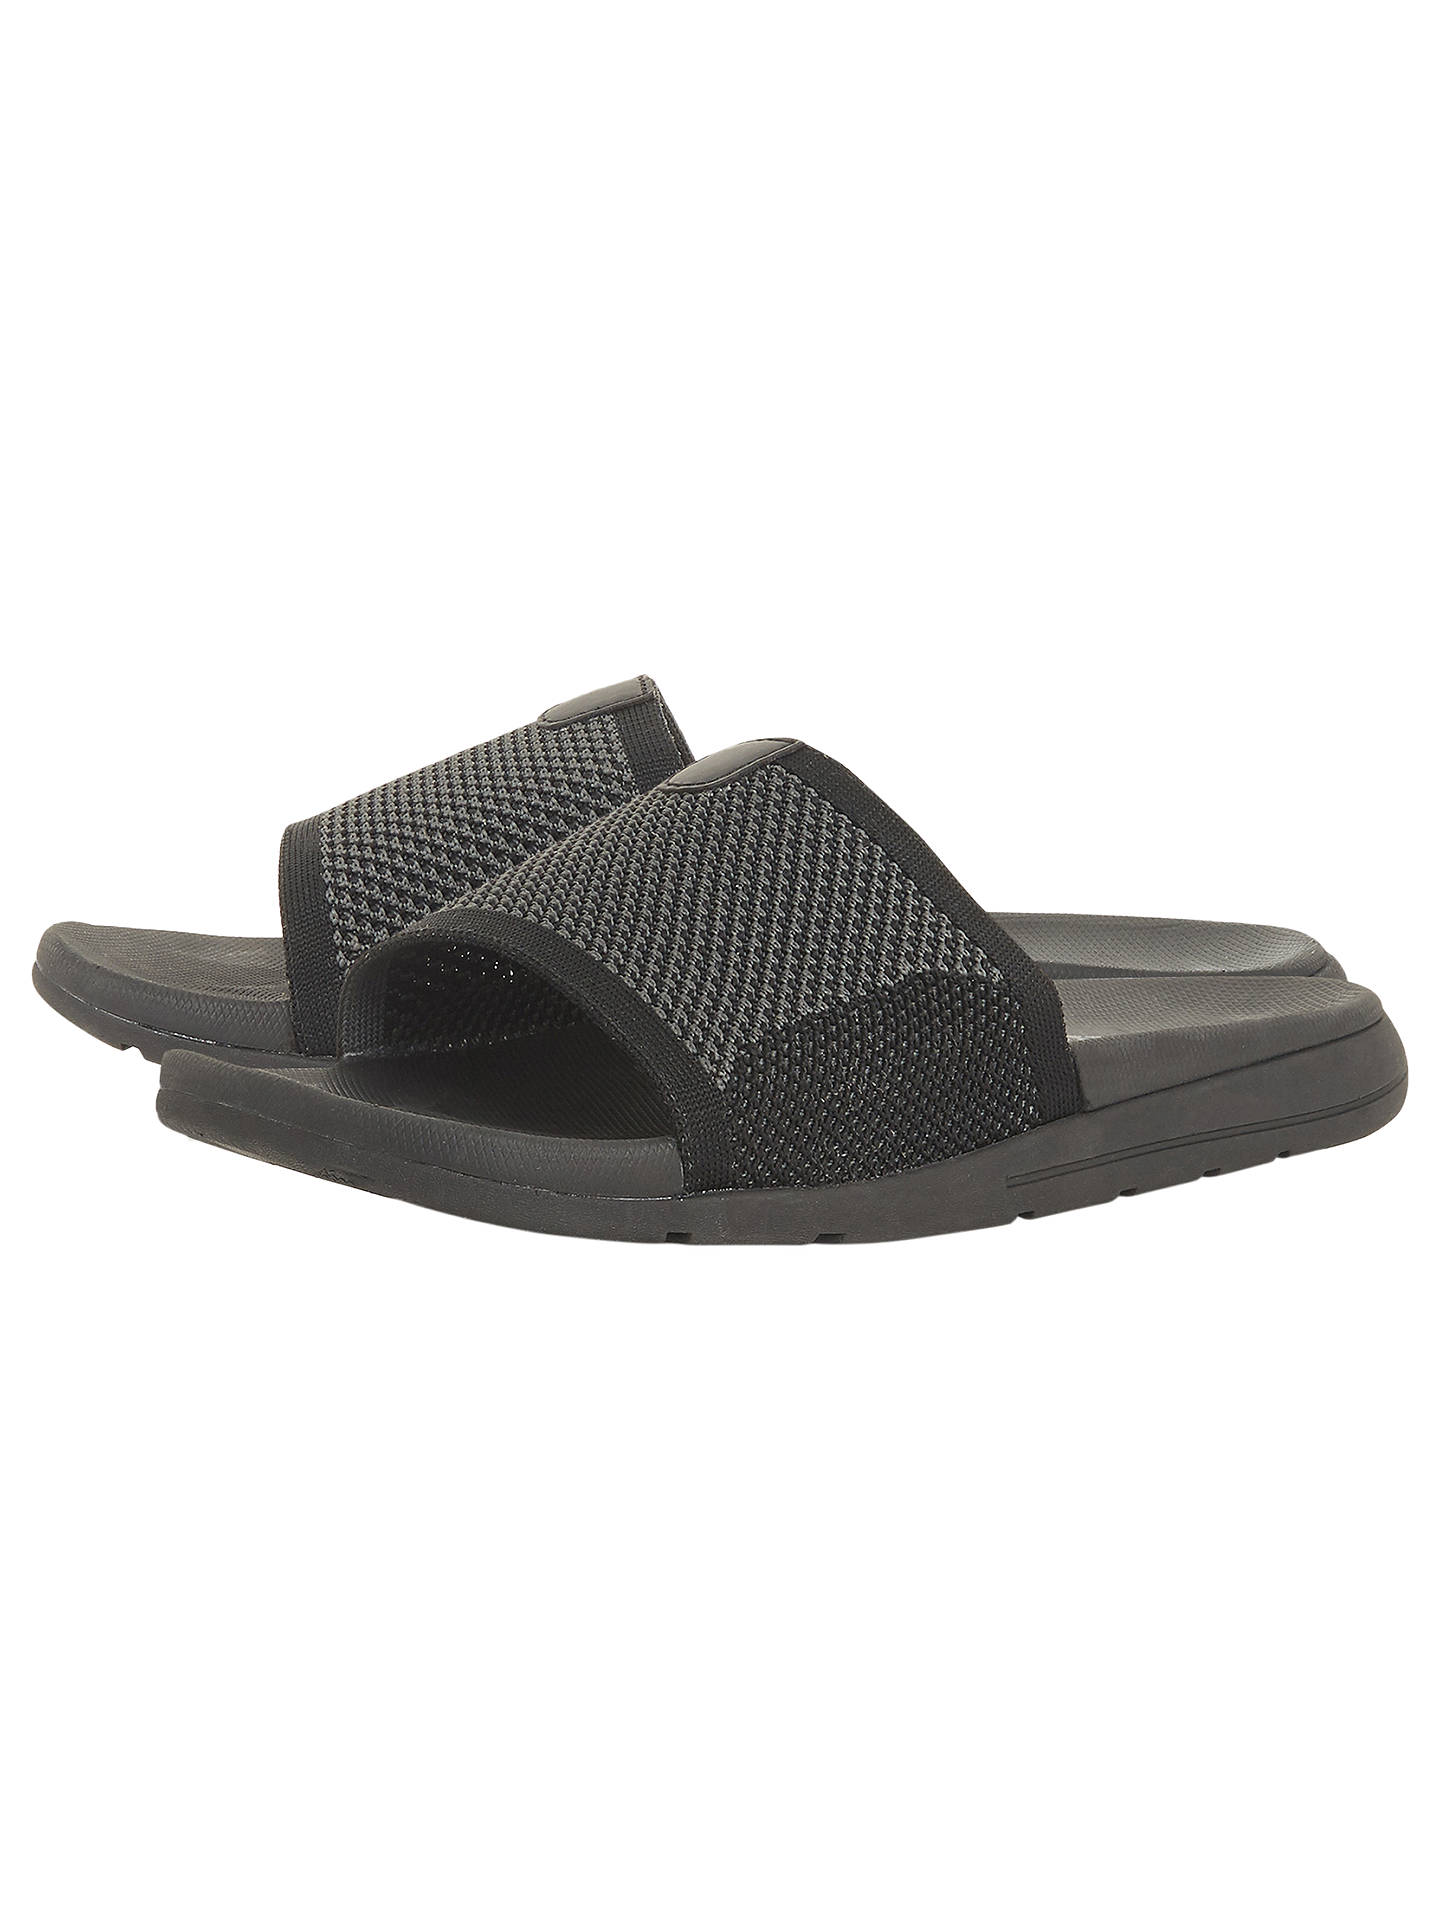 6ac38a96fafe ... Buy Dune Hanks Knit Strap Slider Sandals